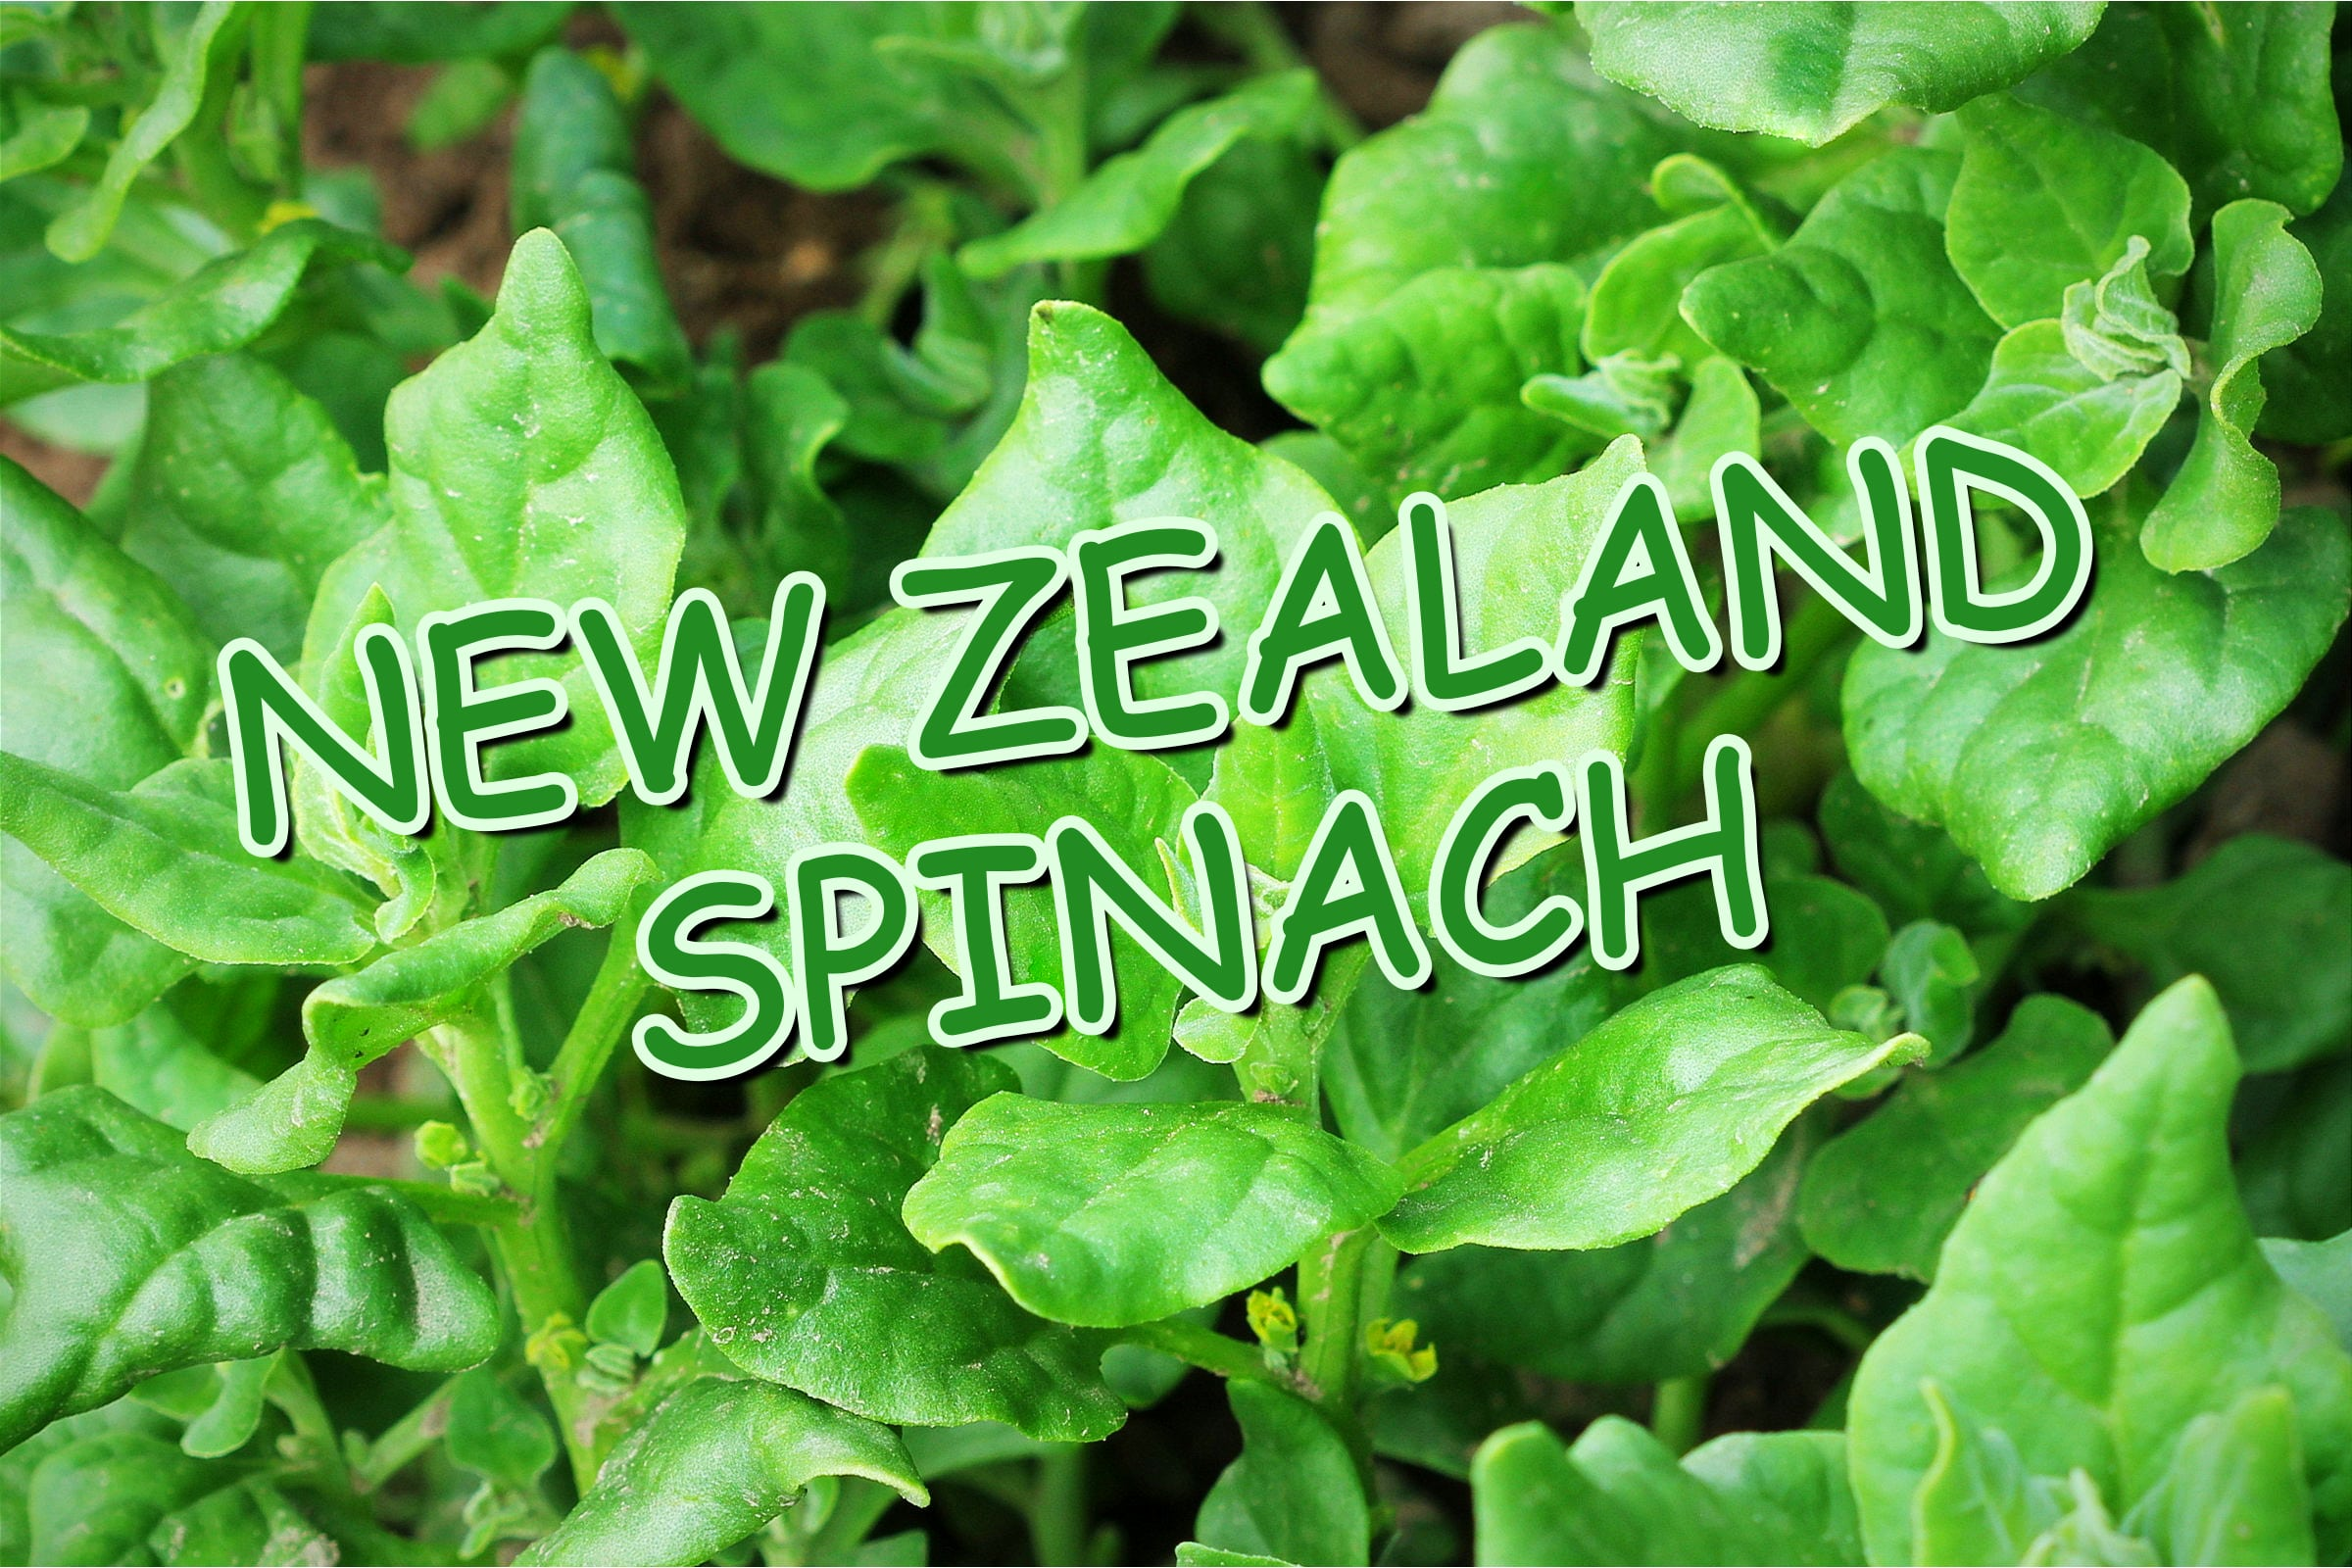 What Is The New Zealand Spinach Plant?